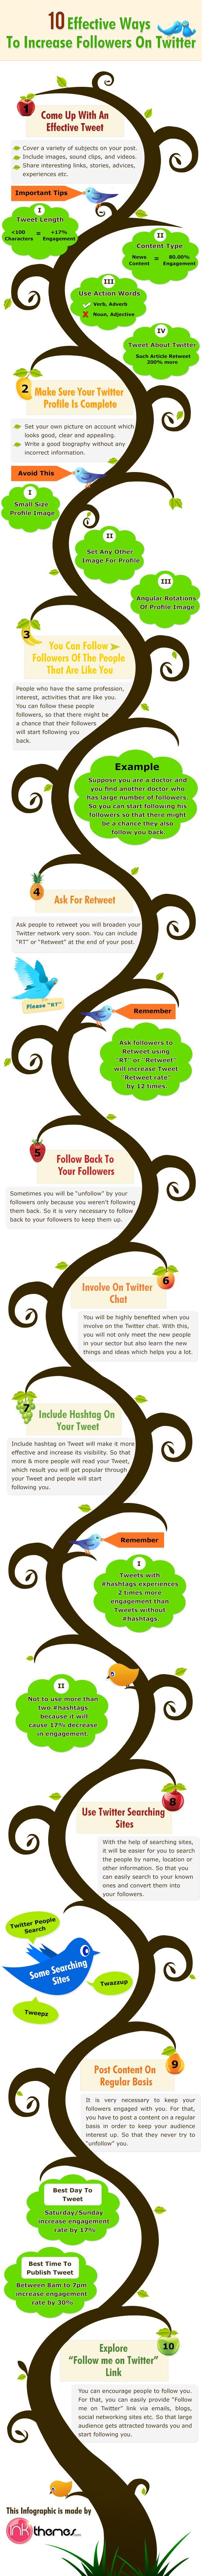 10 Effective Ways To Get More Followers On Twitter #Infographic #SocialMedia #Twitter